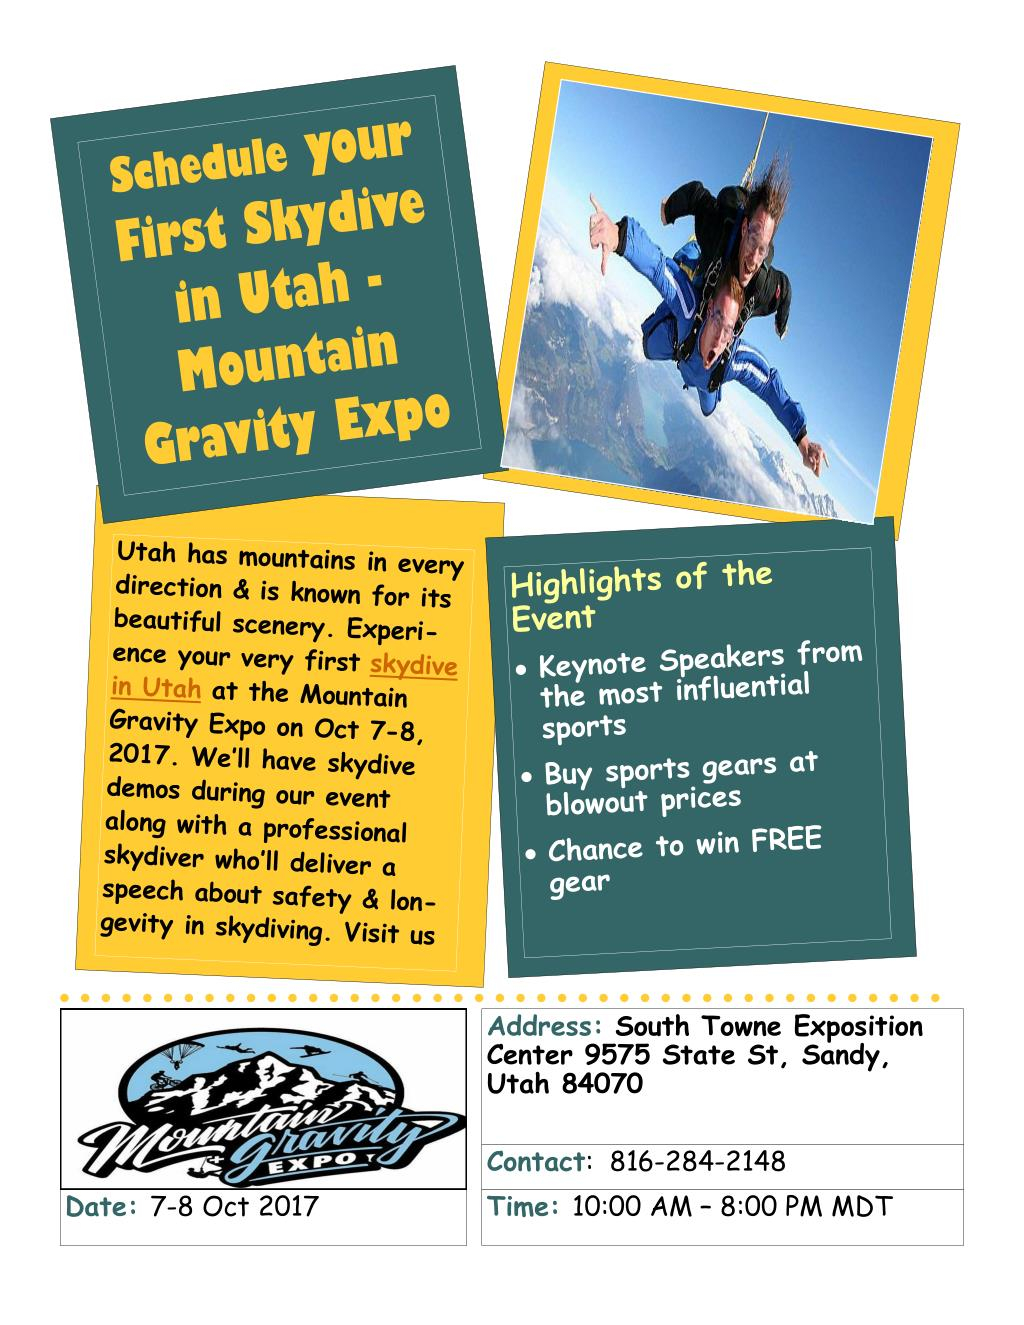 Ppt - Schedule Your First Skydive In Utah - Mountain Gravity With South Town Expo Schedule Utah